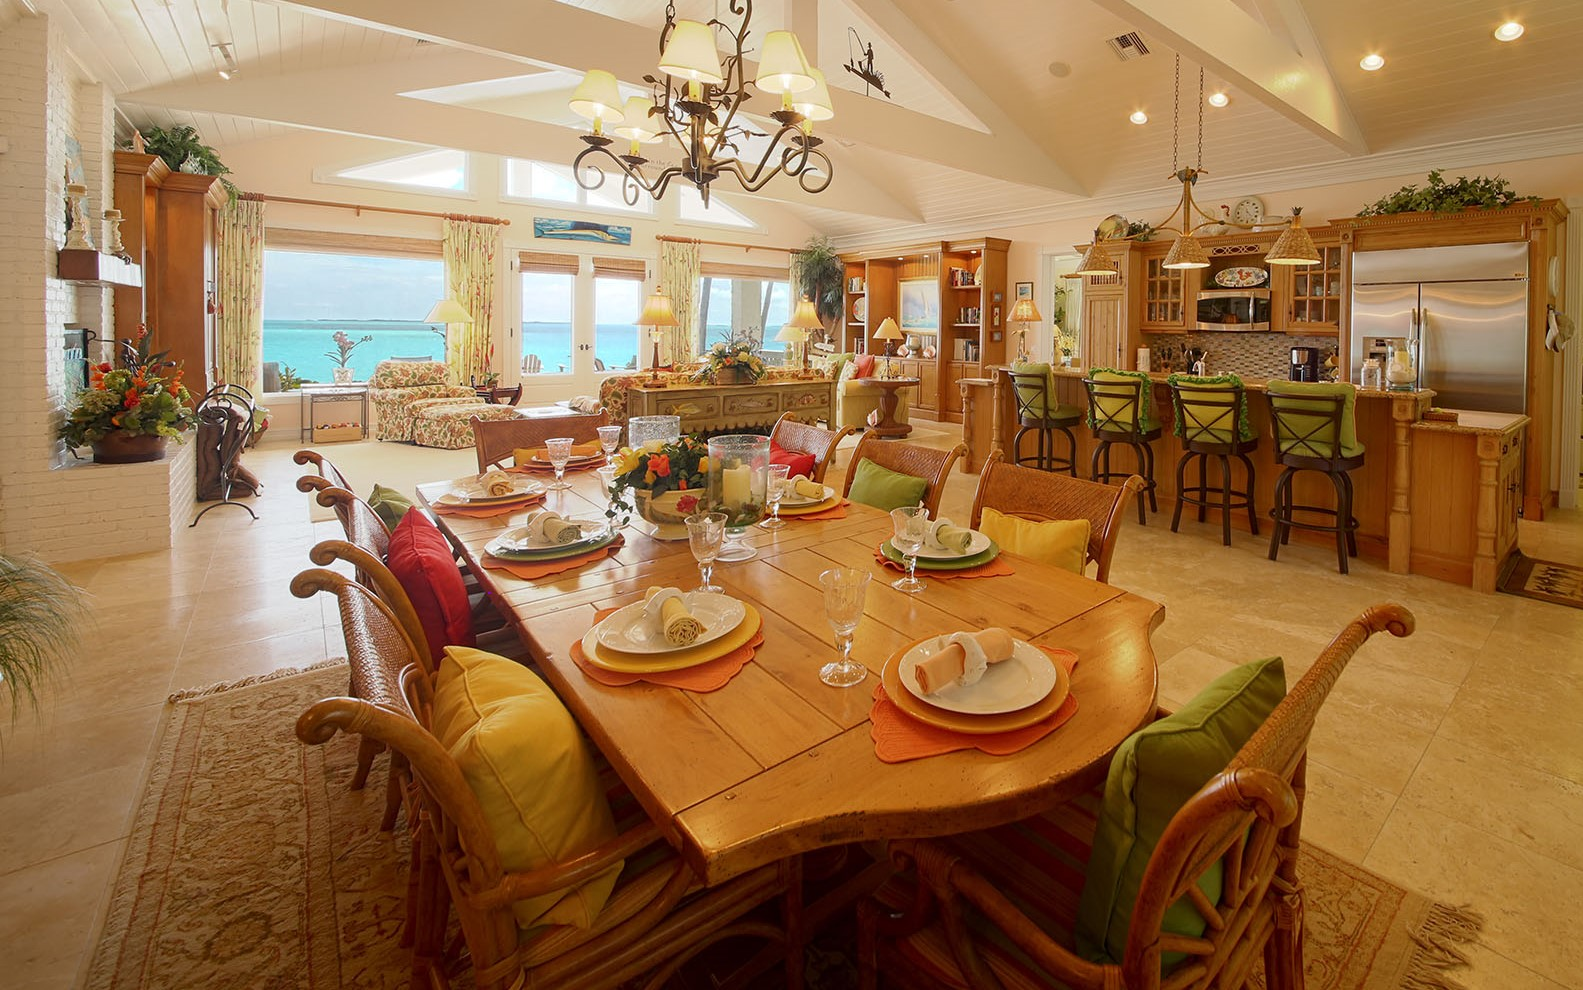 Casa Unifamiliar por un Venta en Luxury Beachfront Estate on Treasure Cay Beach Abaco, Bahamas